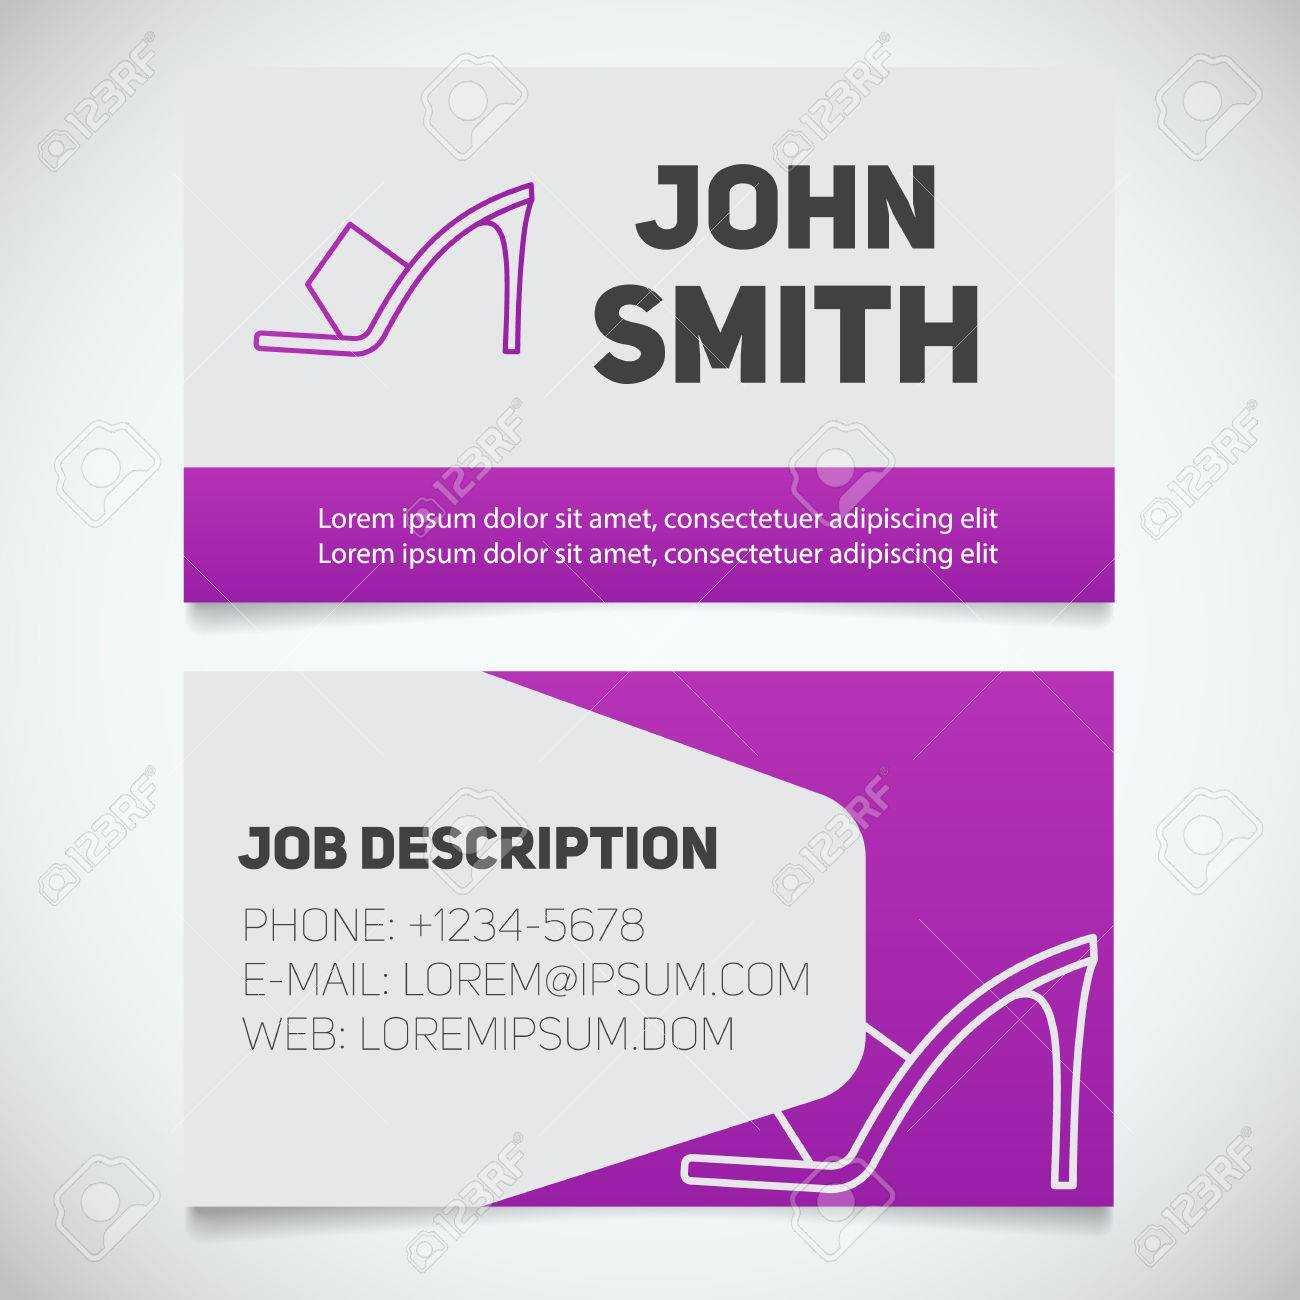 Business Card Print Template With High Heel Shoe Logo. Manager Inside High Heel Template For Cards